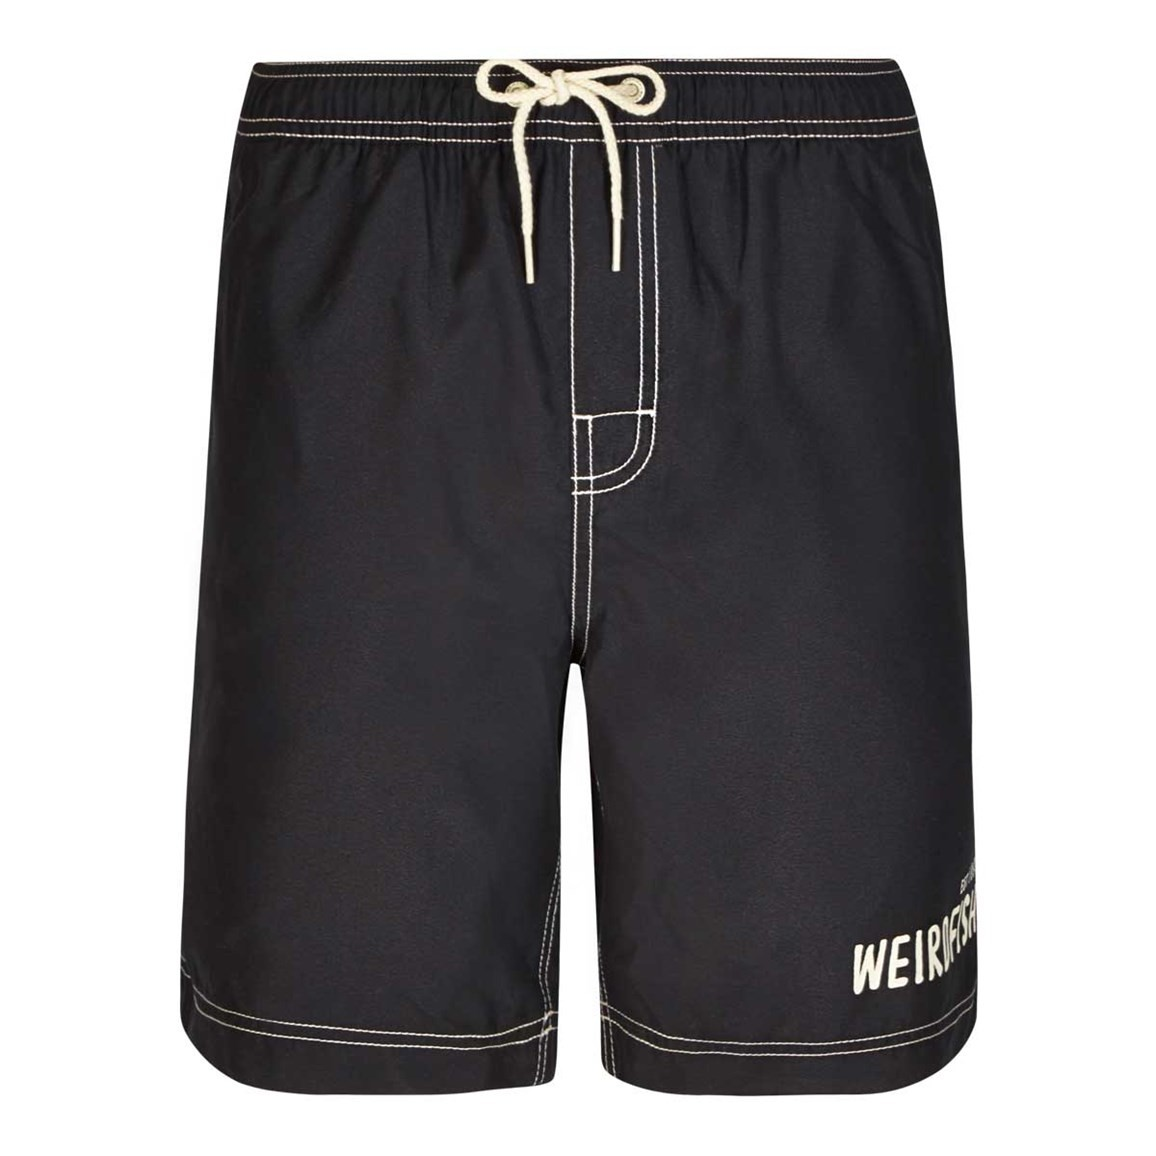 Weird Fish Volac Branded Board Short Navy